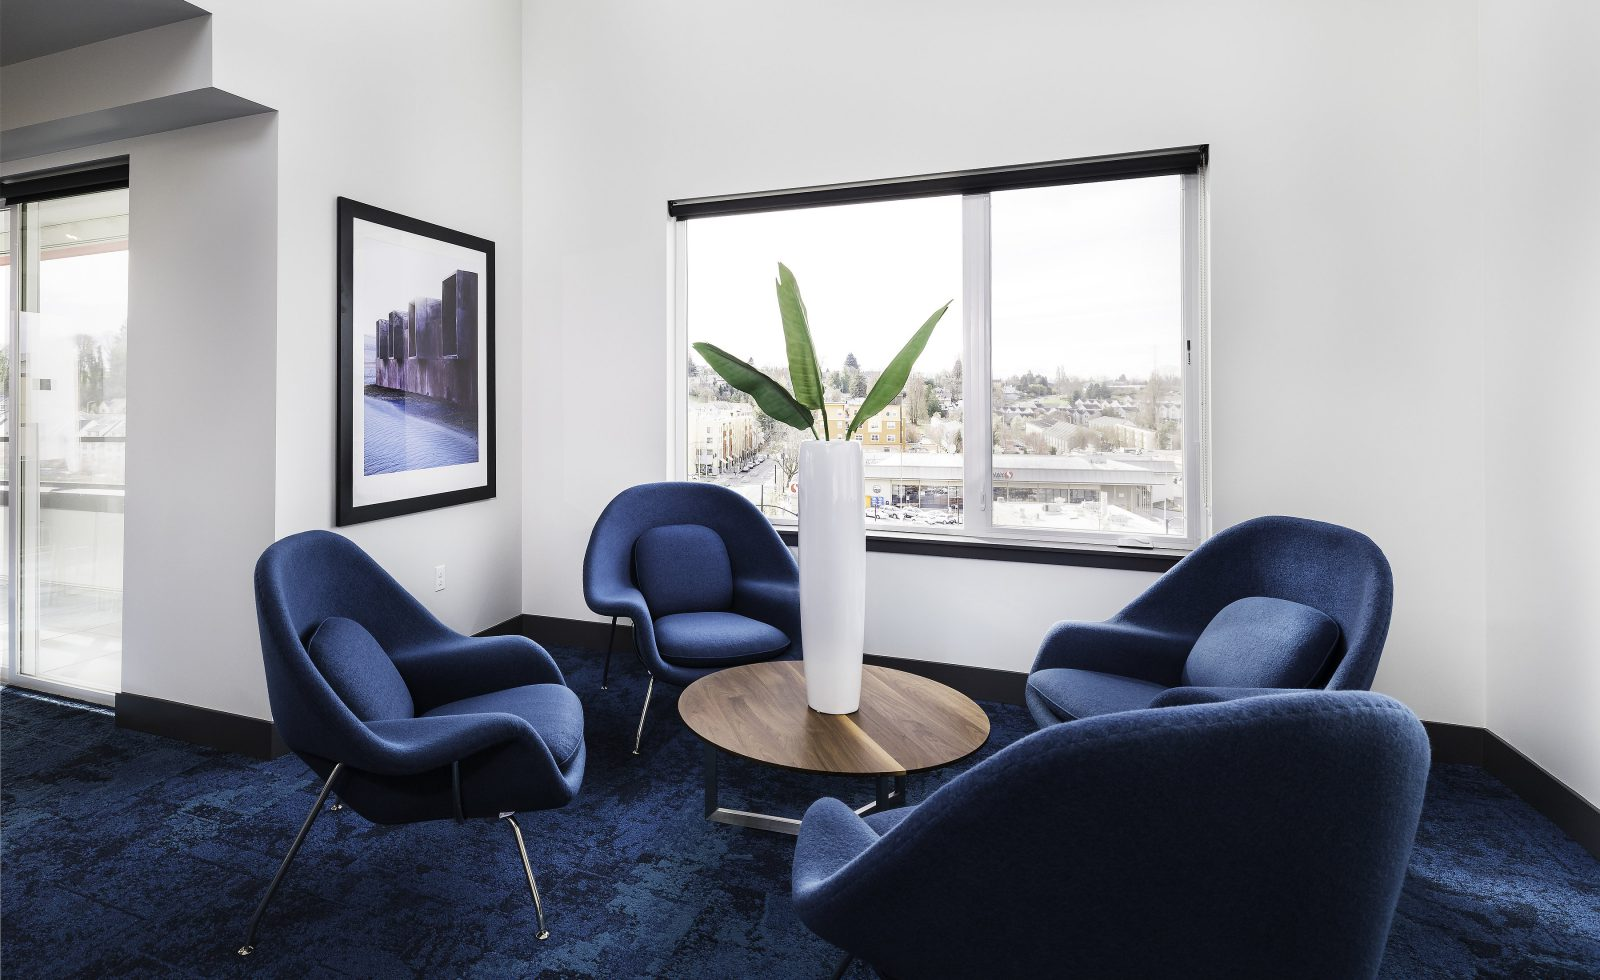 Sky Lounge seating area with a brown table and 4 blue chairs